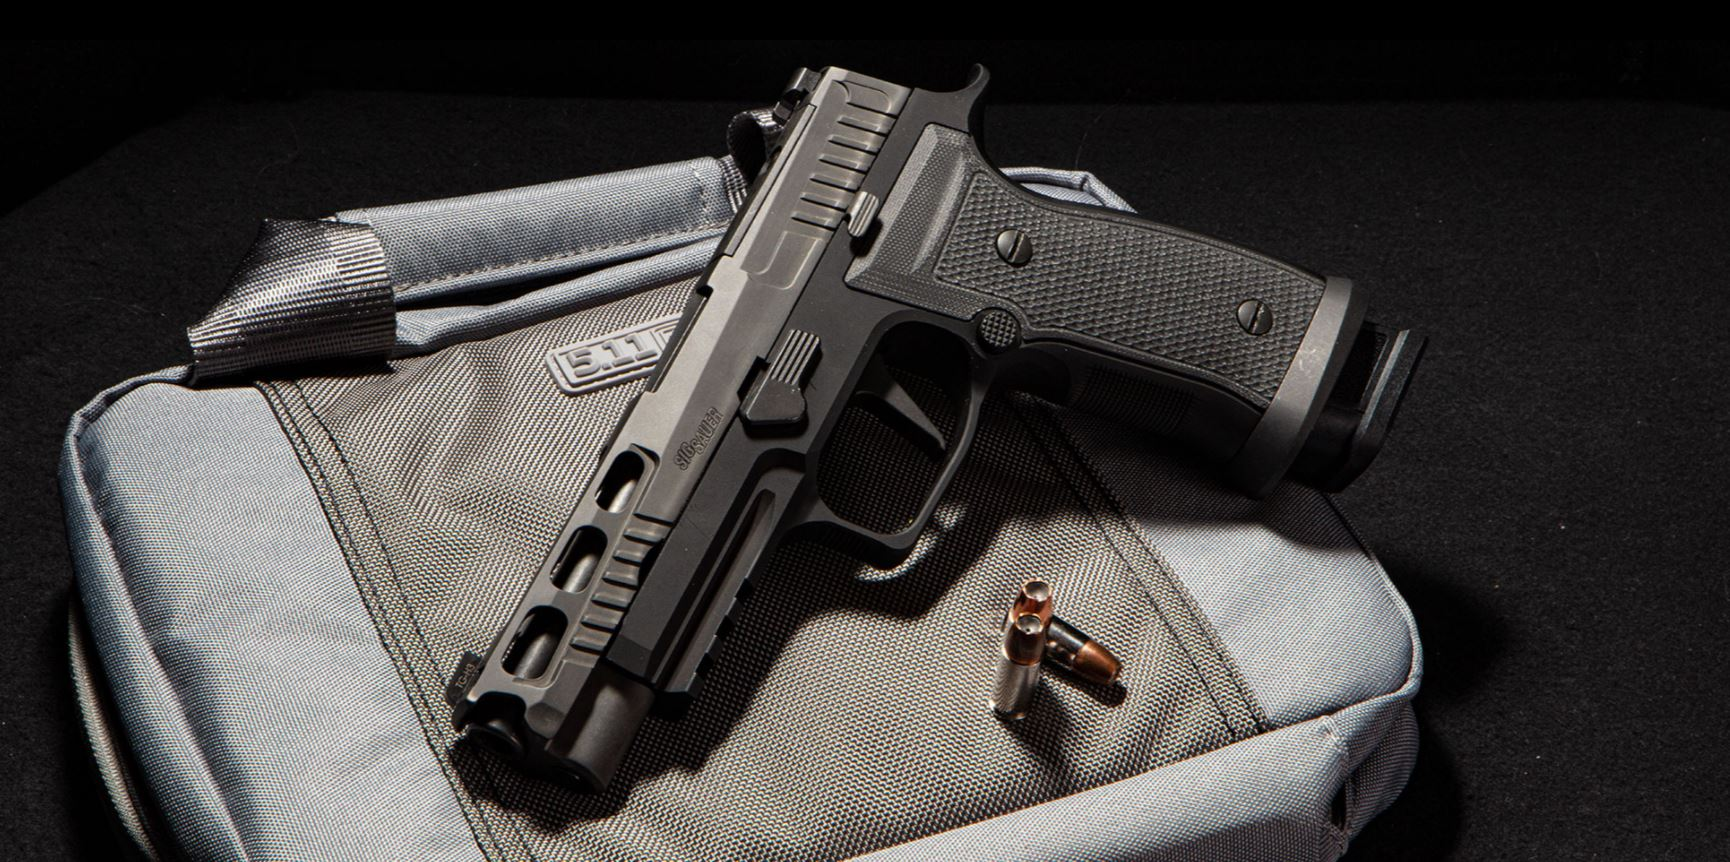 SIG P320 AXG Pro Pistol Added to Growing SIG Sauer P320 Lineup